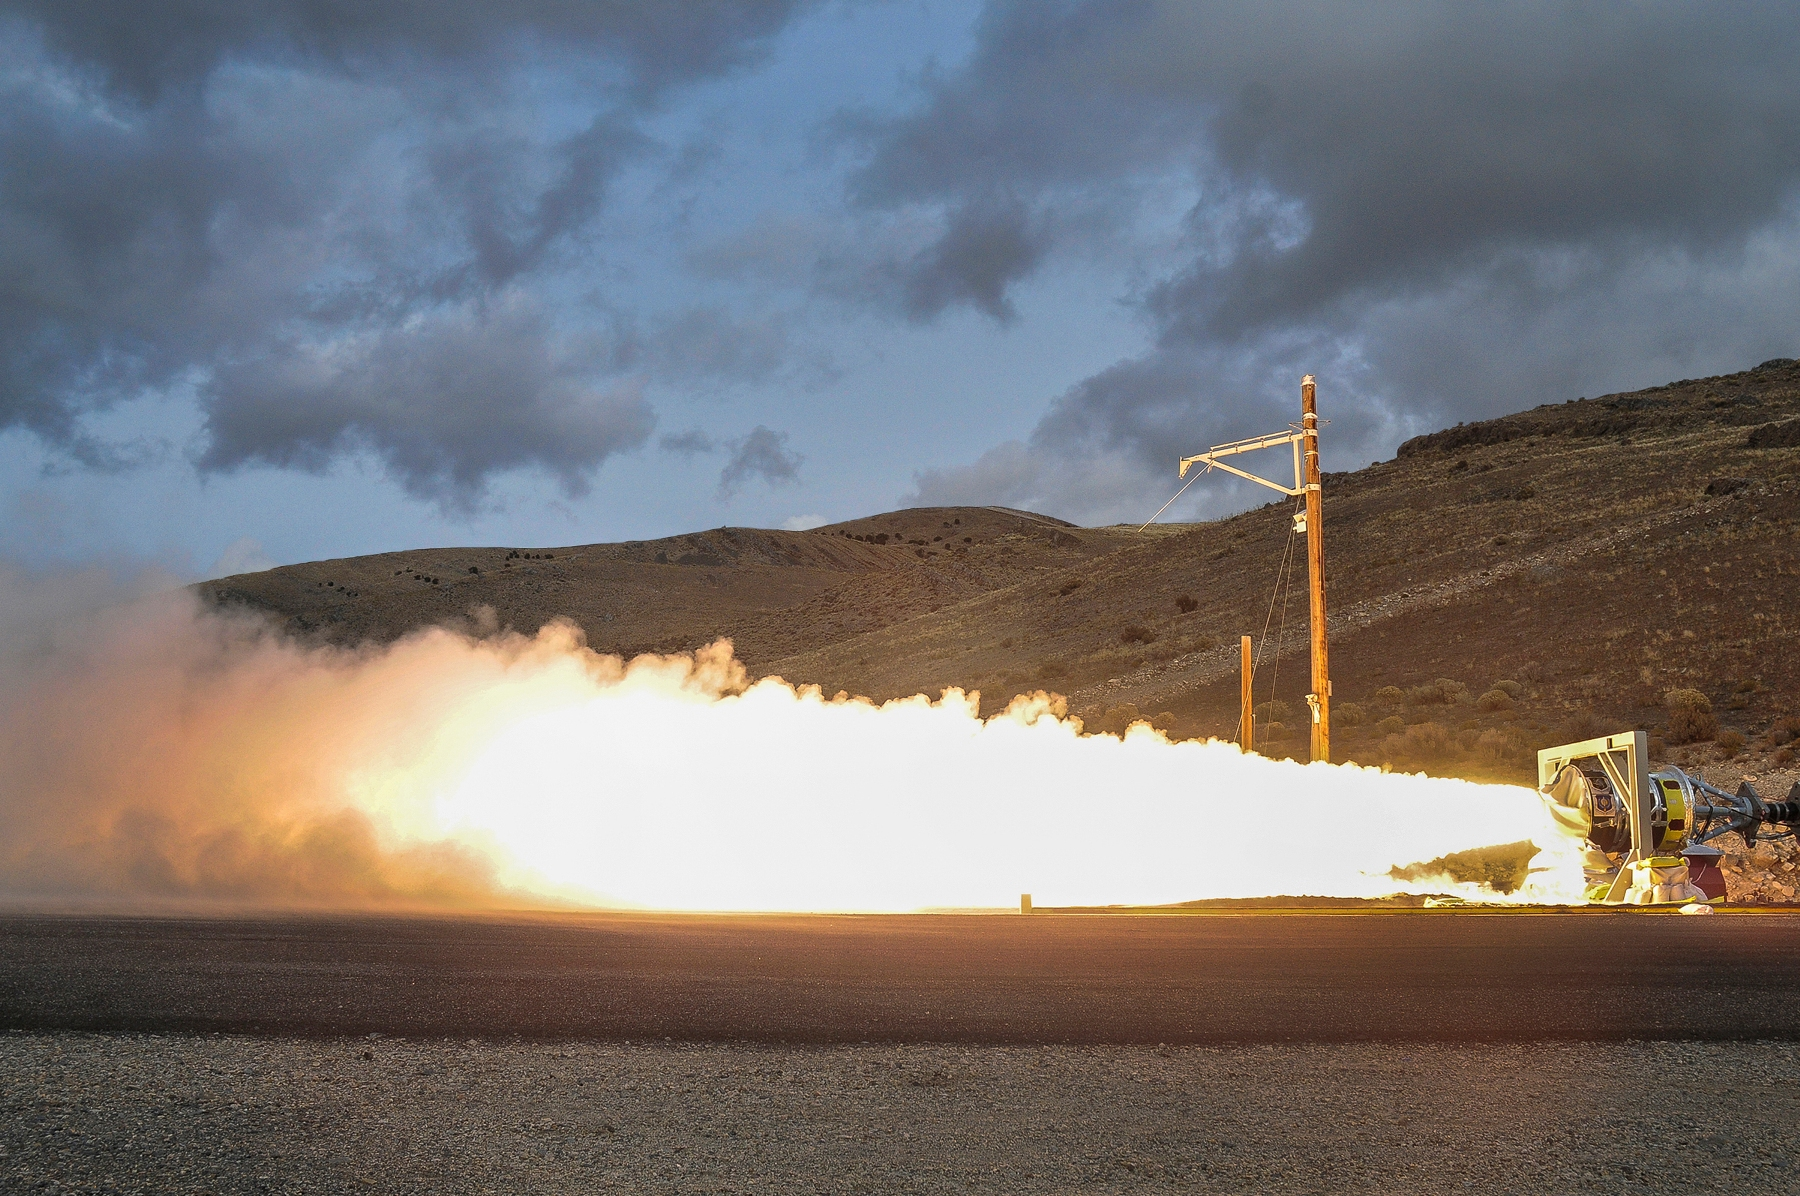 Solid rocket motor ground level fire test